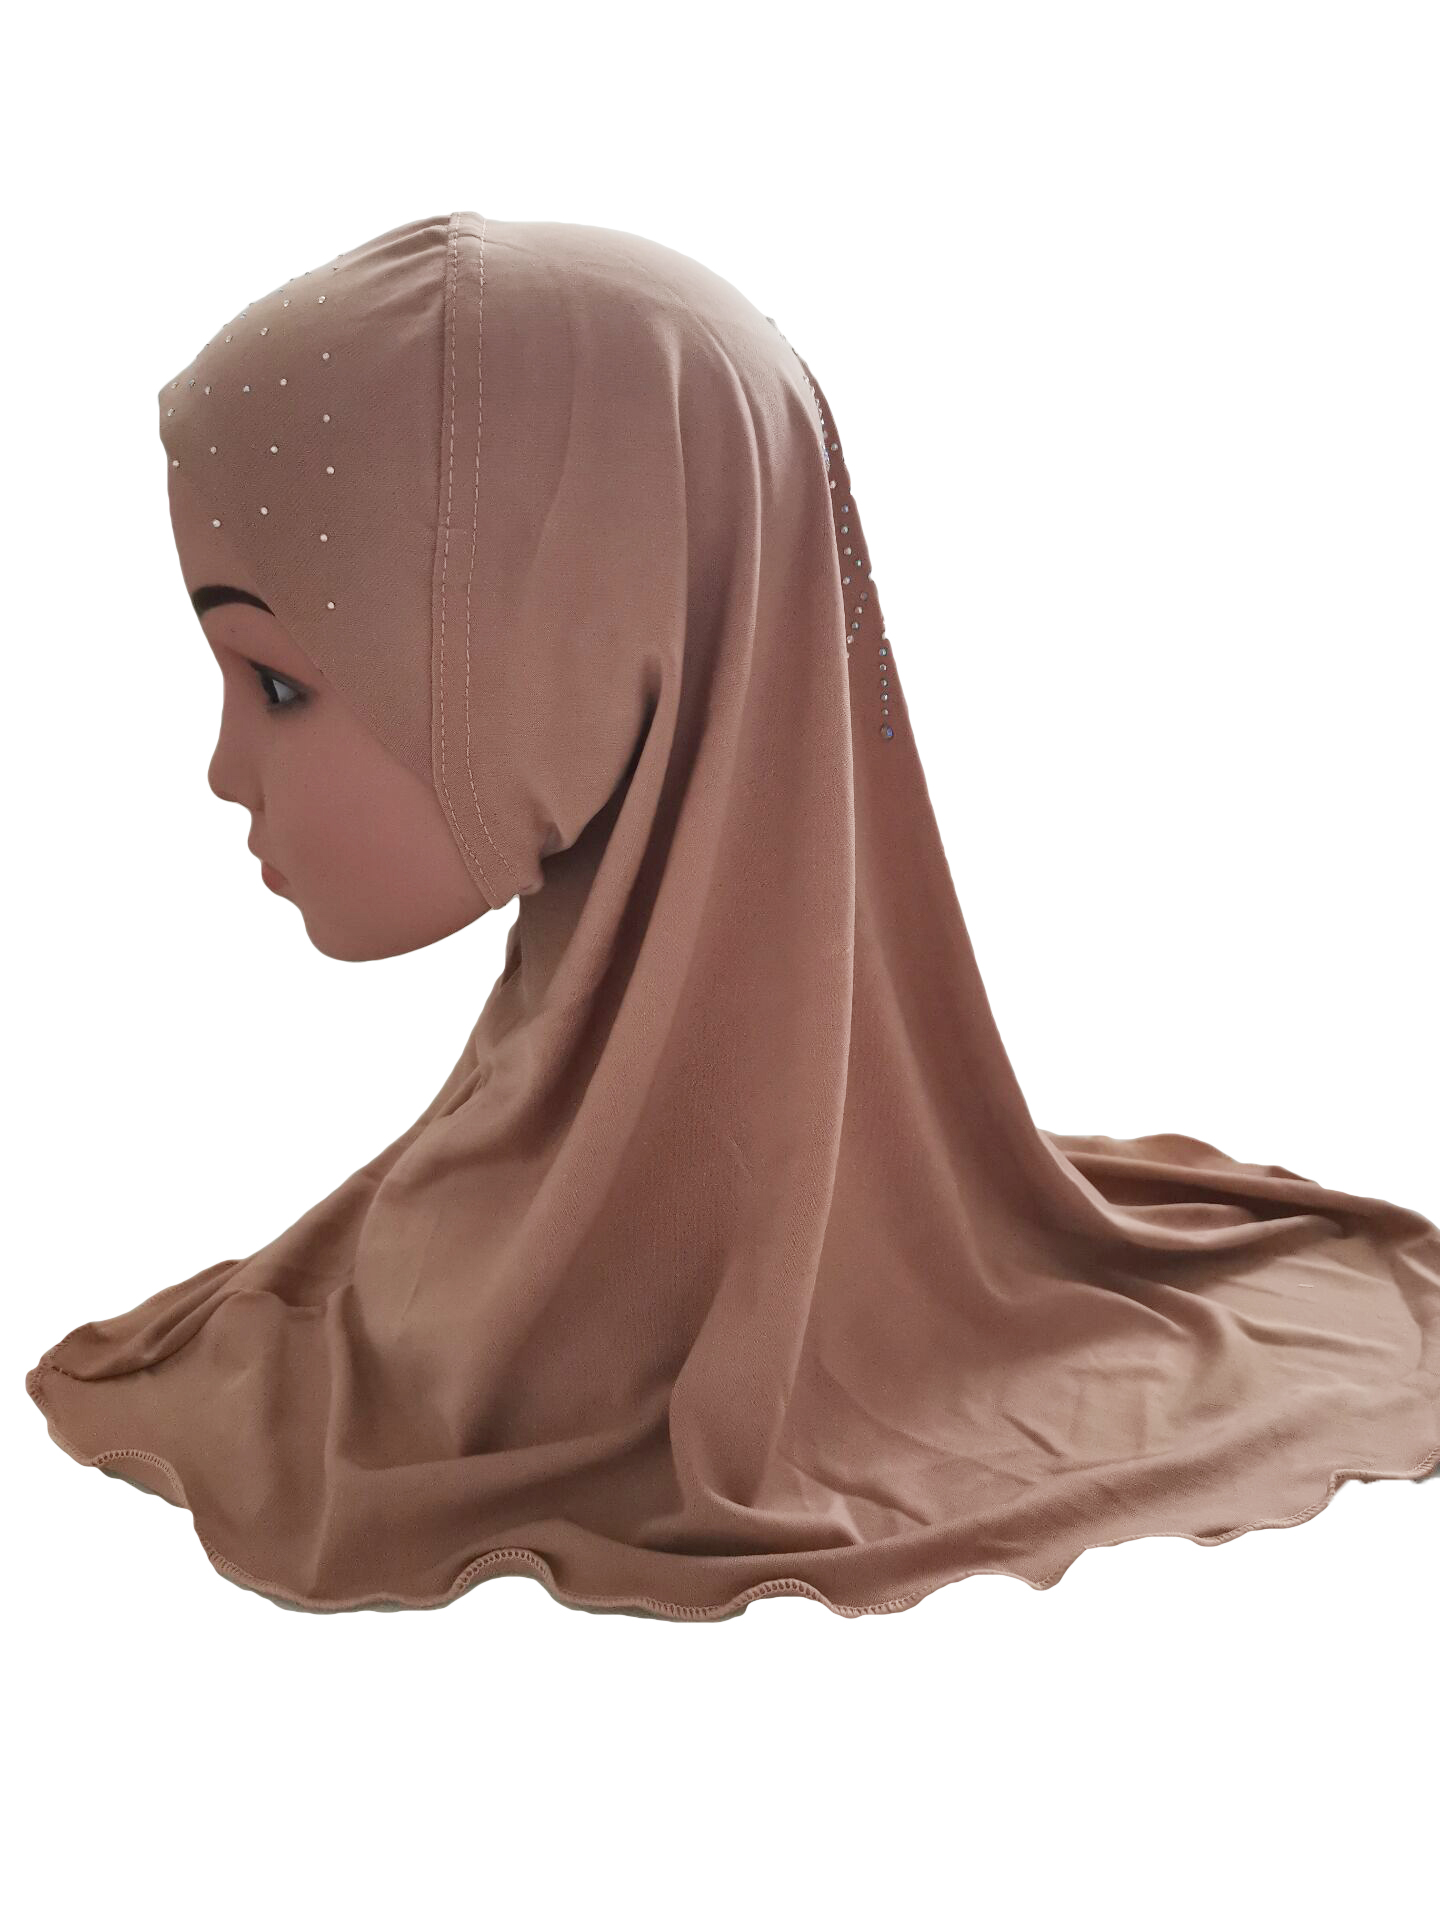 Girls-Kids-Muslim-Hijab-Hats-Islamic-Arab-Scarf-Caps-Shawls-Amira-Headwear-3-8Y thumbnail 92